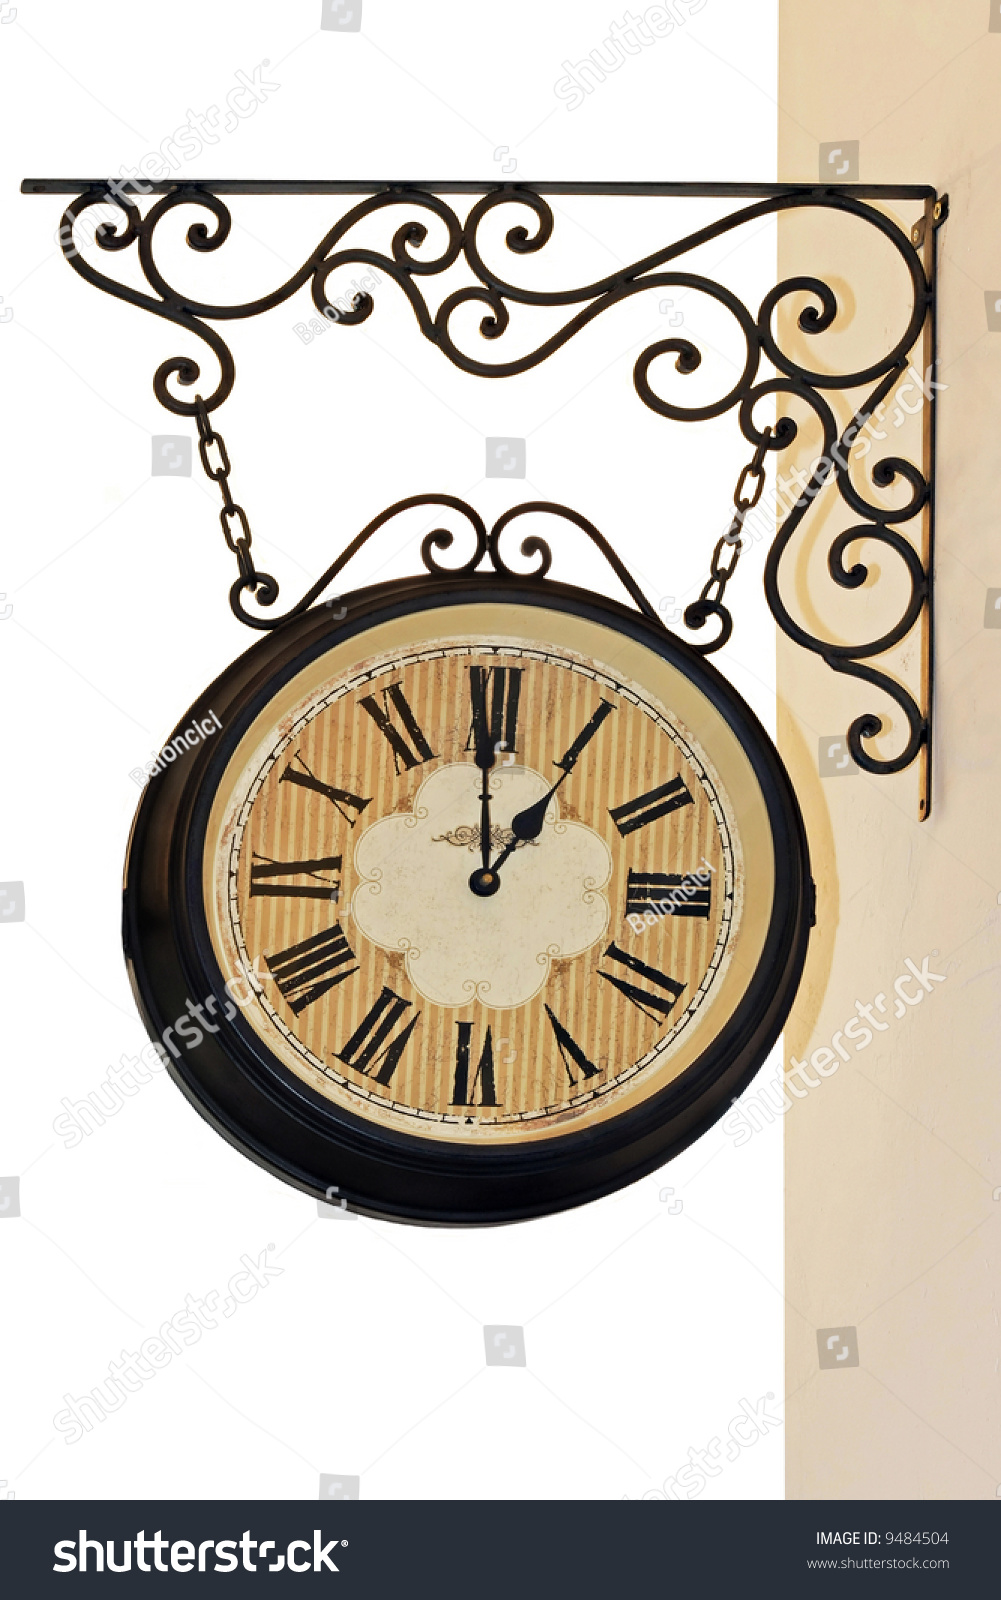 Old Style Hanging Clock Iron Work Stock Photo 9484504